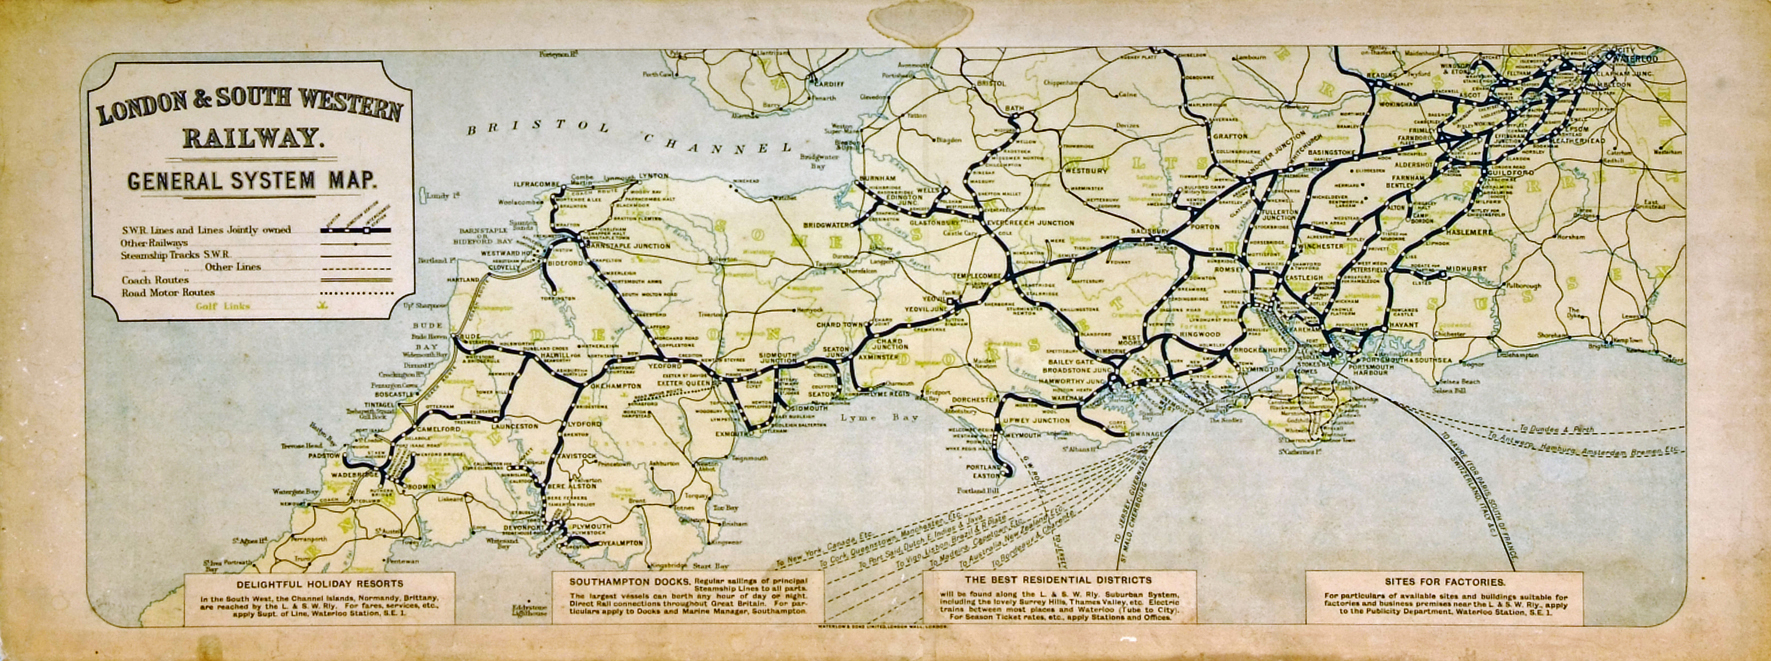 LSWR Carriage Print General System Map. Not The